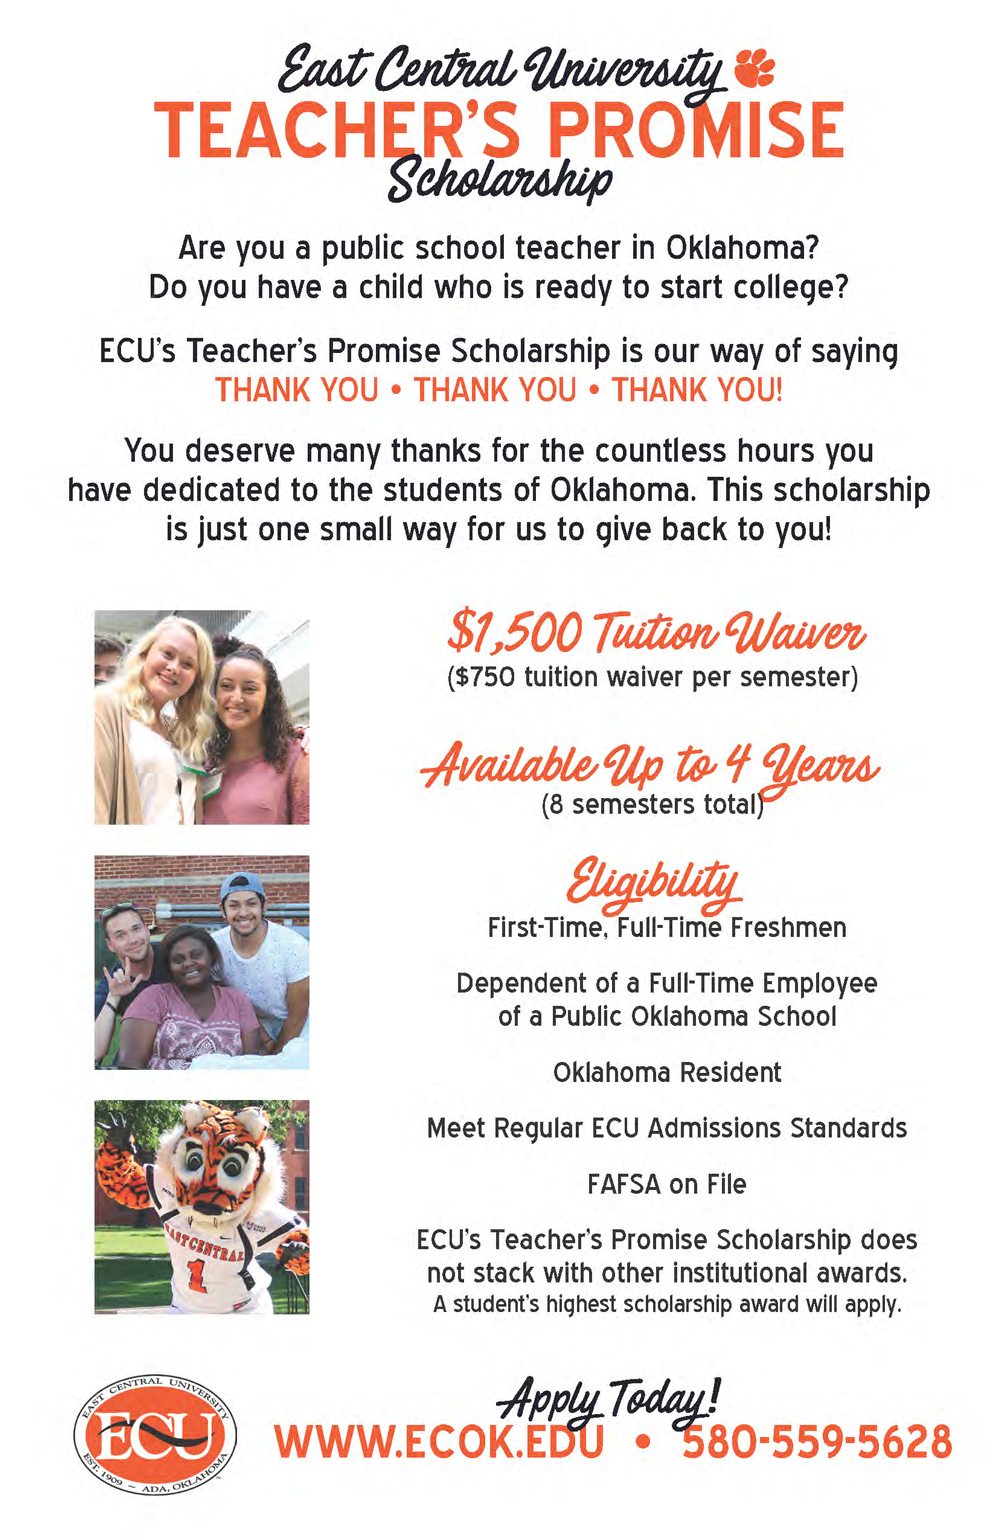 "Graphical Teachers Promise Flier with pictures of students and Roary the Tiger mascot. Are you a public school teacher in Oklahoma? Do you have a child who is ready to start college? ECU's Teacher's Promise Scholarship is our way of saying ""Thank You! Thank You! Thank You!"" You deserve many thanks for the countless hours you have dedicated to the students of Oklahoma. This scholarship is just one small way for us to give back to you!  What is it? $1,500 tuition waiver ($750 tuition waiver per semester), available up to 4 years (8 semesters total).  Eligibility First-Time, Full-Time Freshmen Dependent of a full-time employee of a public Oklahoma school. Oklahoma Resident Meet Regular ECU Admissions Standards FAFSA on File ECU's Teacher's Promise Scholarship does not stack with other institutional awards. A student's highest scholarship award will apply. Apply today! www.ecok.edu or call 580-559-5628"